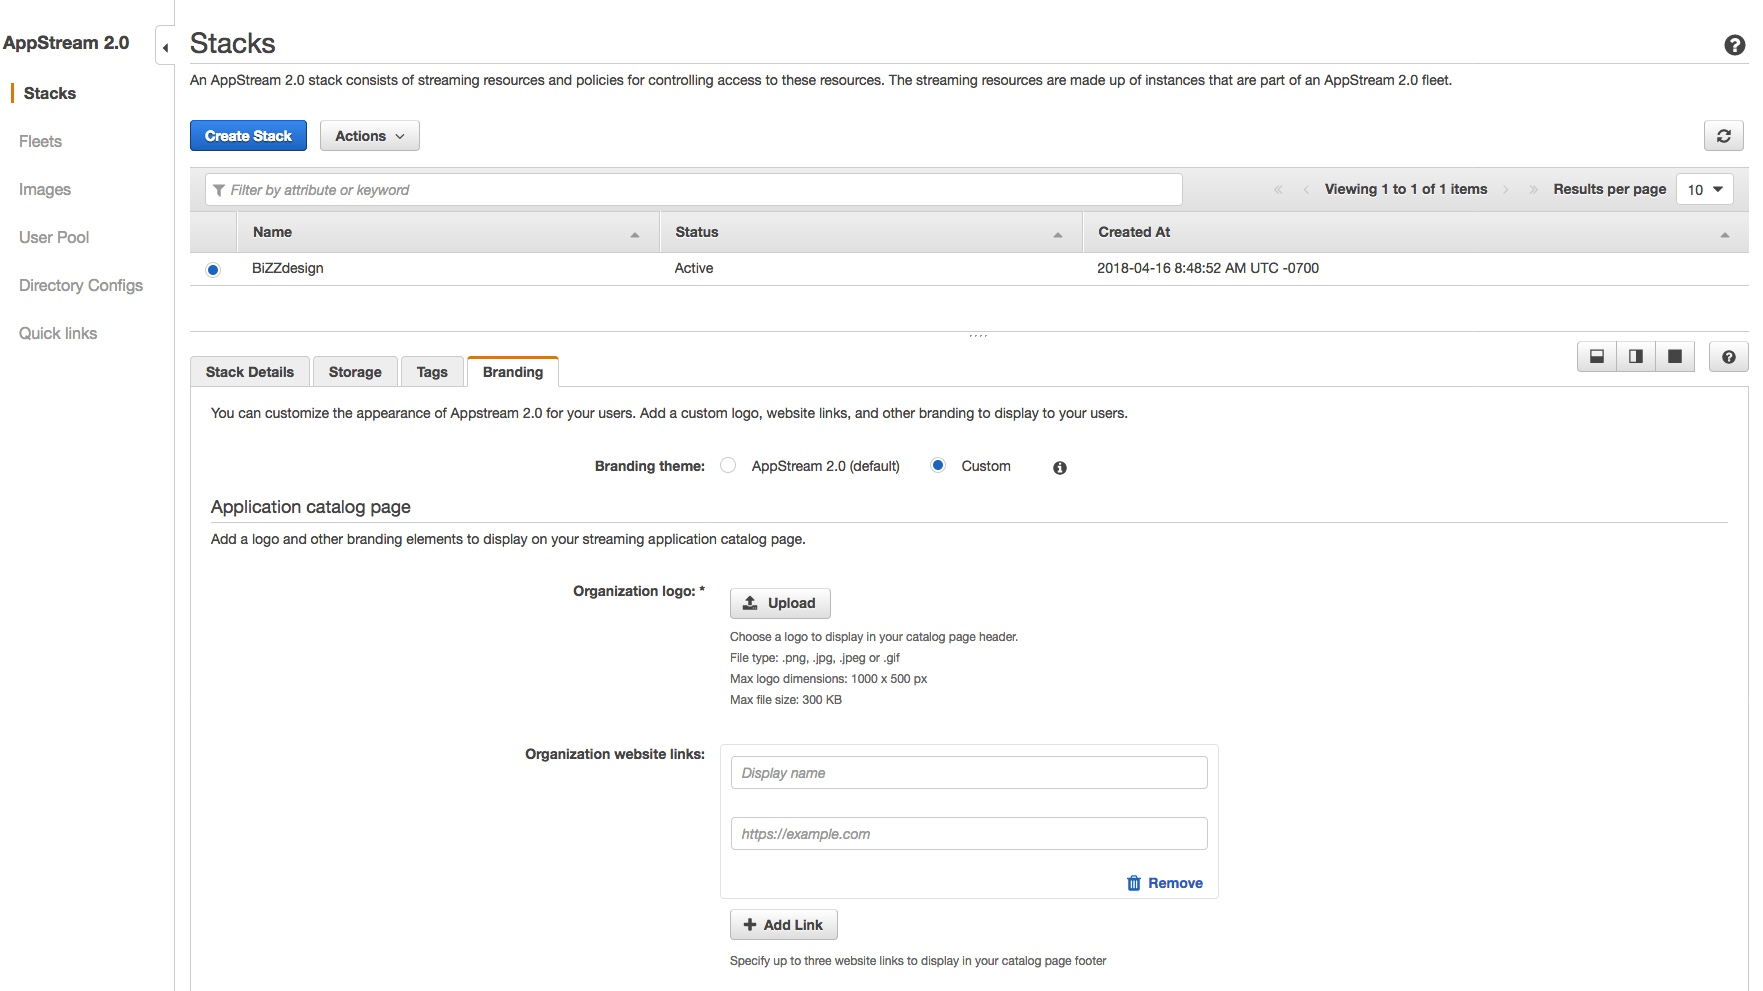 Amazon Com Applicationhelp >> Customize Amazon Appstream 2 0 With Your Own Brand Desktop